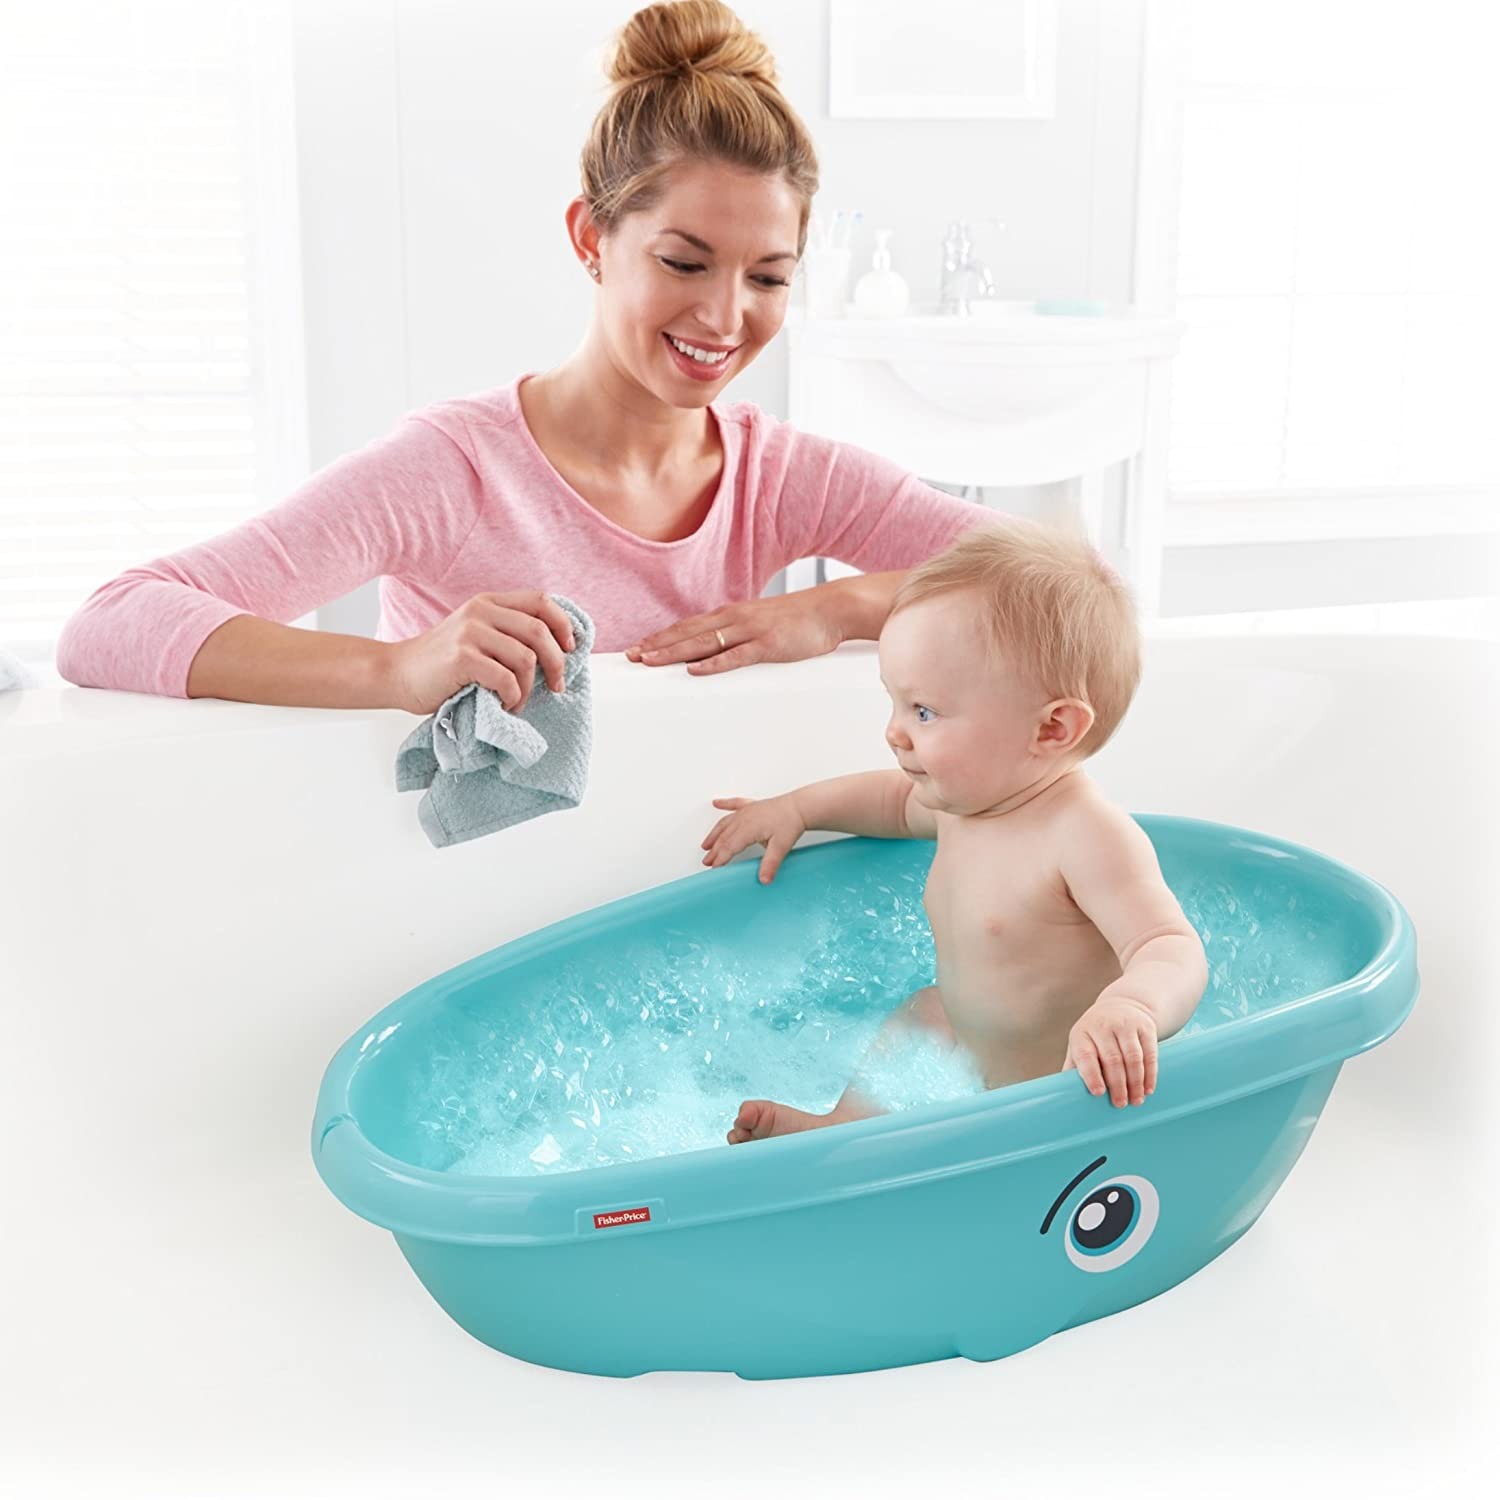 Amazon.com: Fisher-Price Whale of a Tub Bathtub: Kitchen & Dining